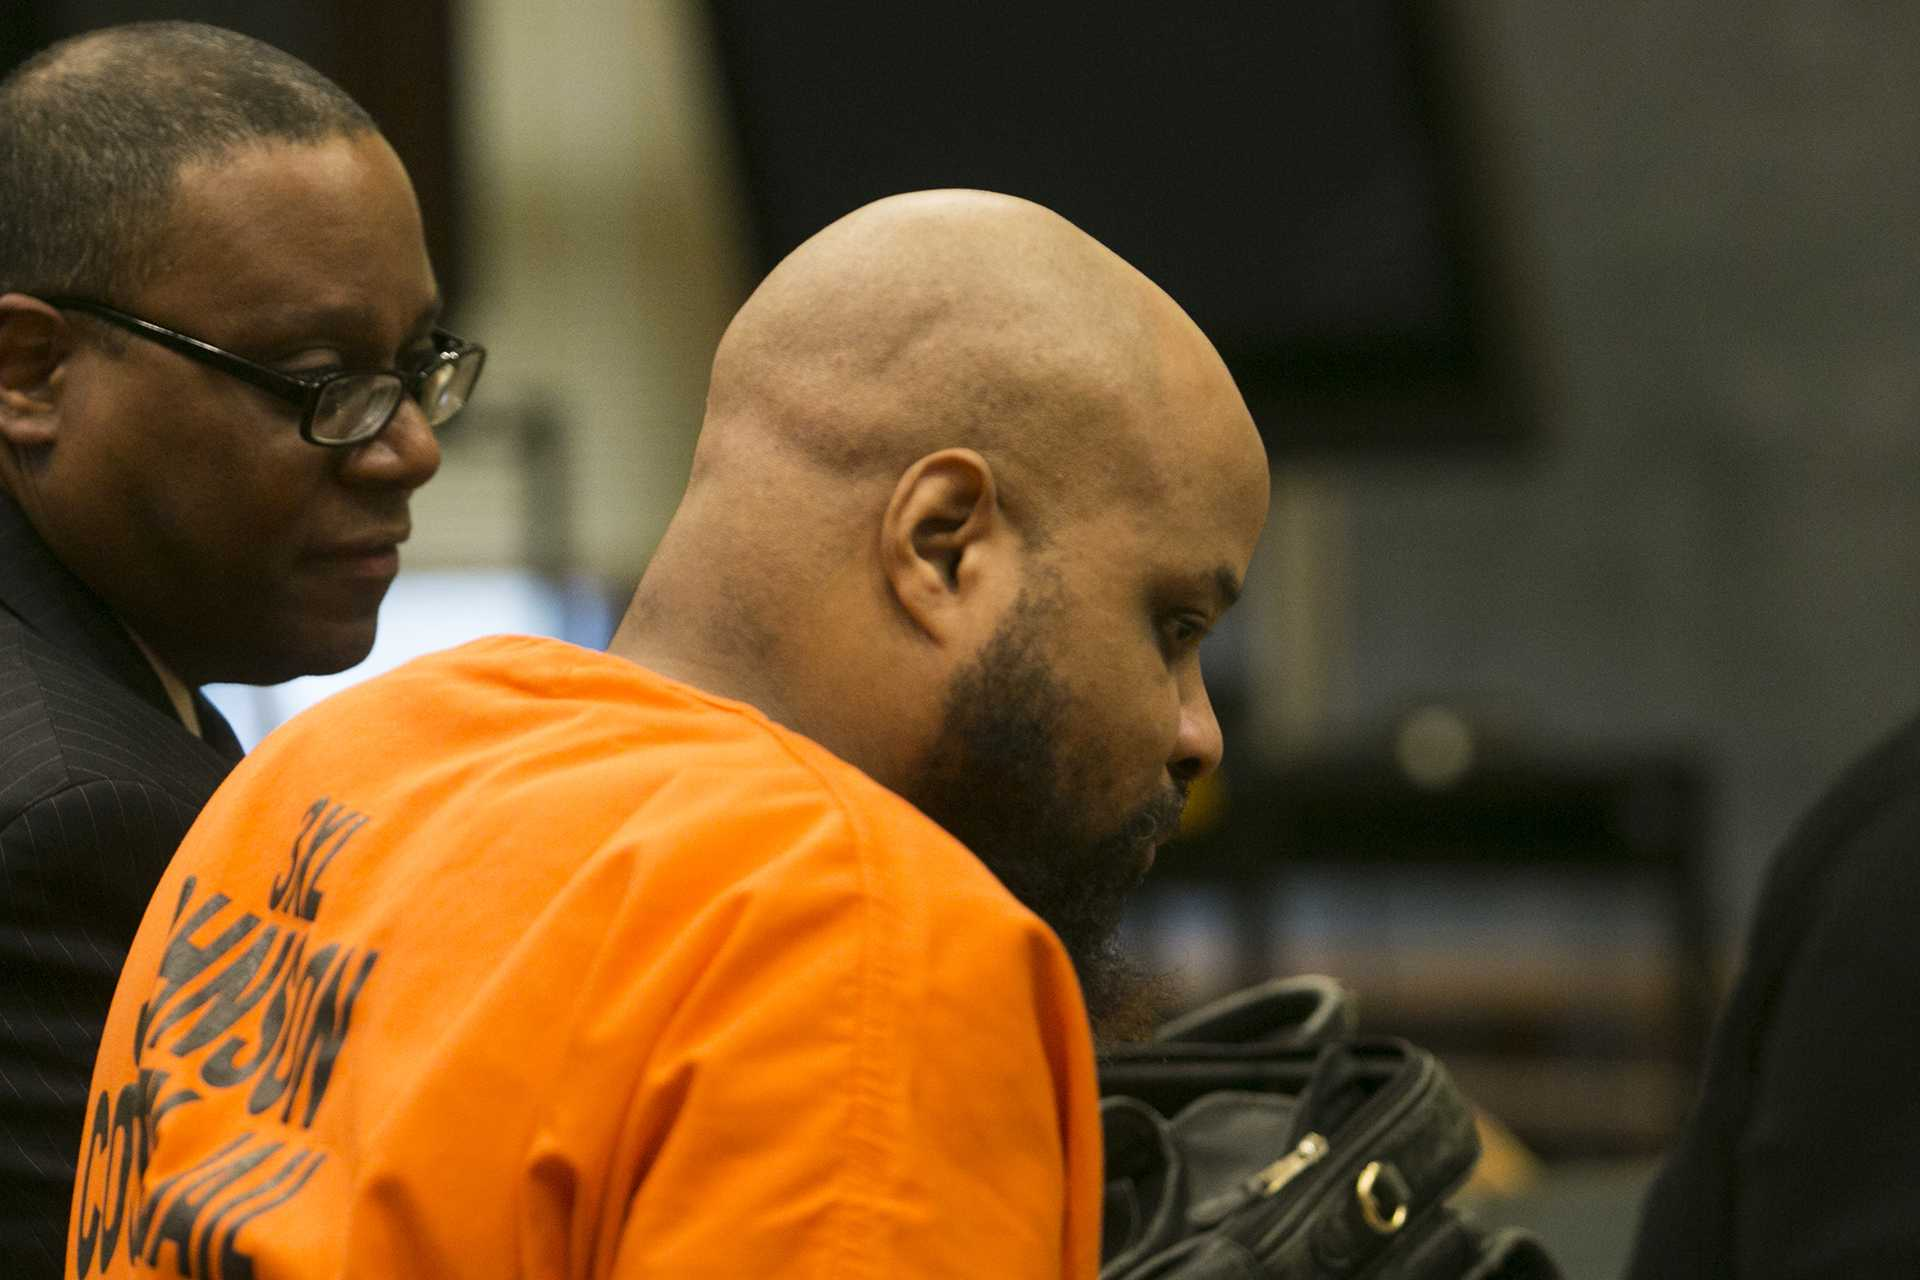 Curtis Jones to appear in court twice more before trial